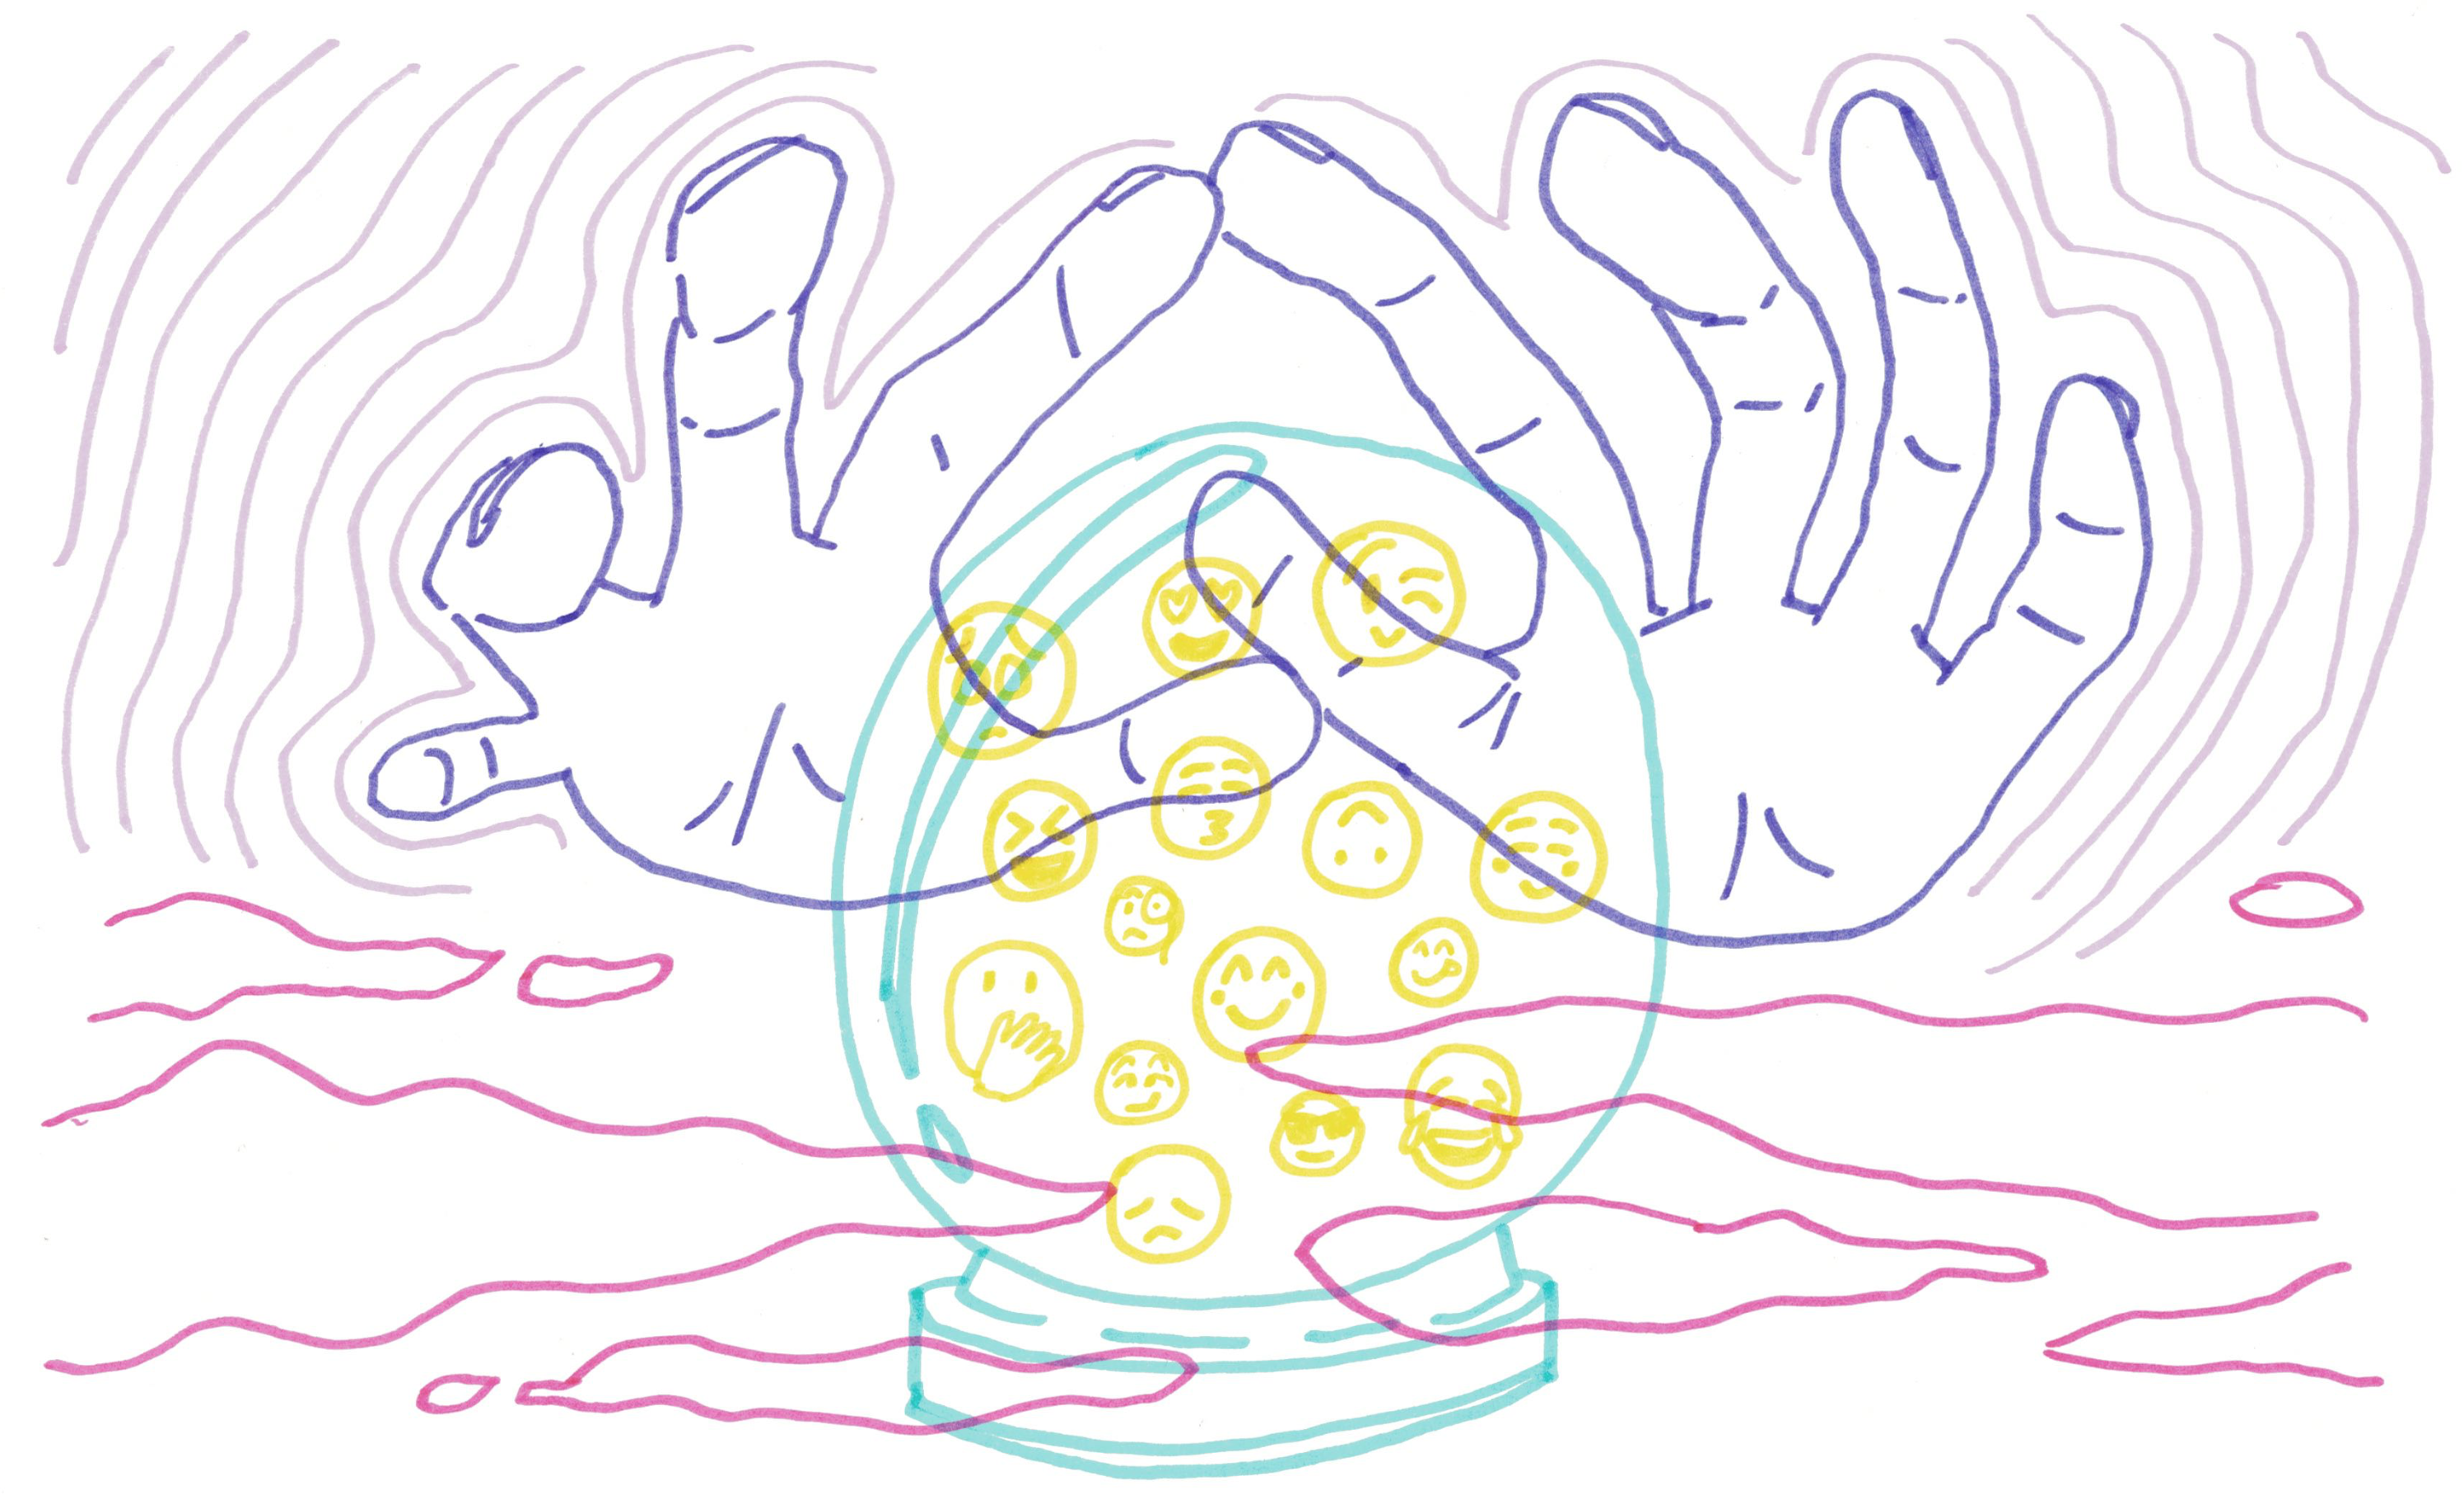 Illustration of two hands over a crystal ball with emoticons inside.